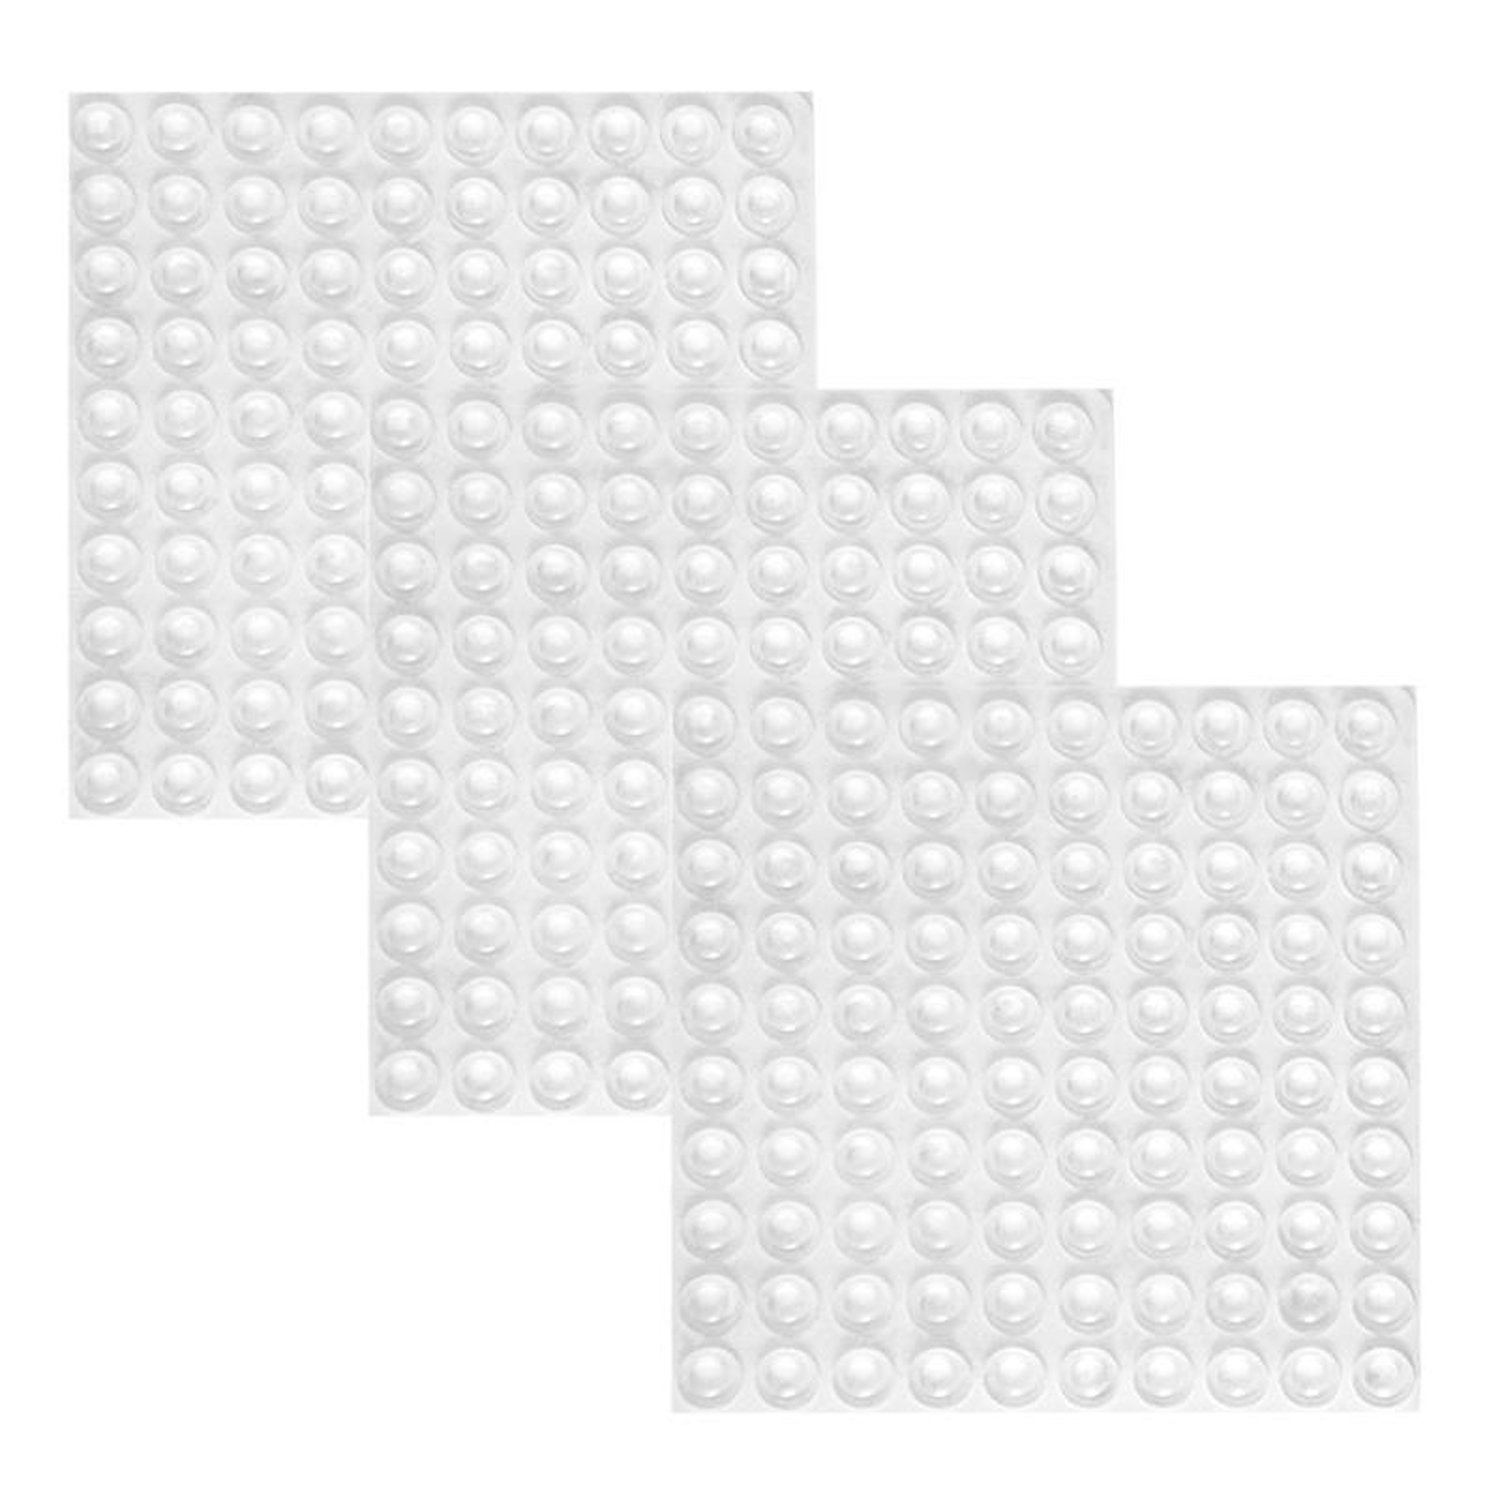 Practical Boutique 300 Pieces Clear Rubber Feet Adhesive Door Bumpers Pads Sound Dampening Cabinet Buffer Pads, 8.5 By 2.5 Mm